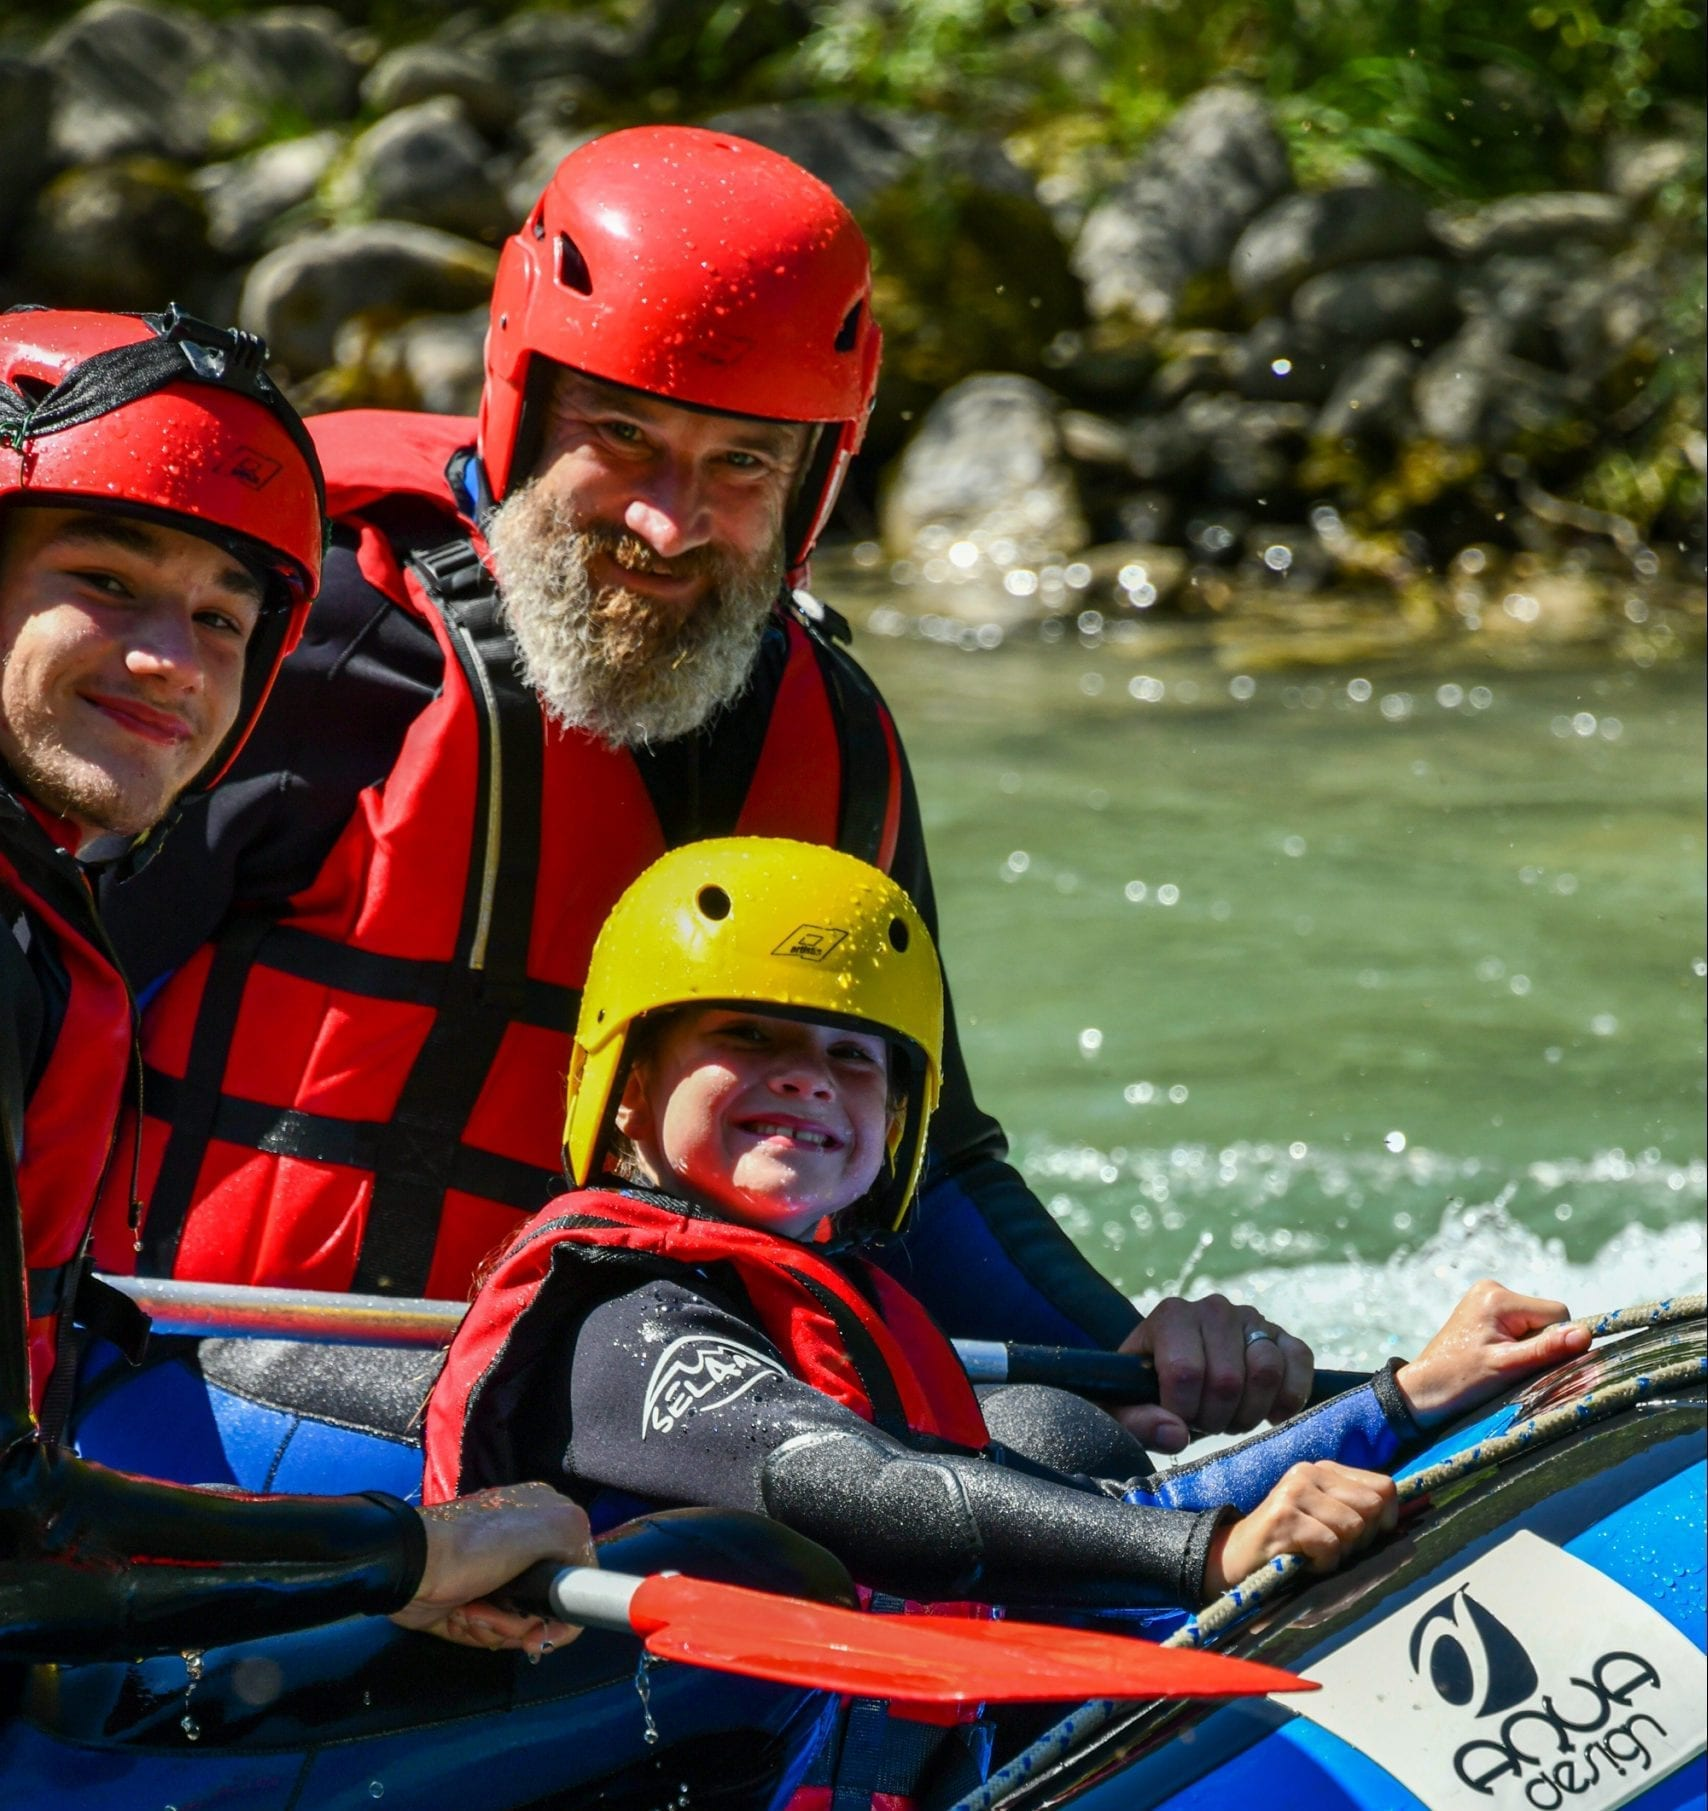 Le verdon with the family - discovery rafting